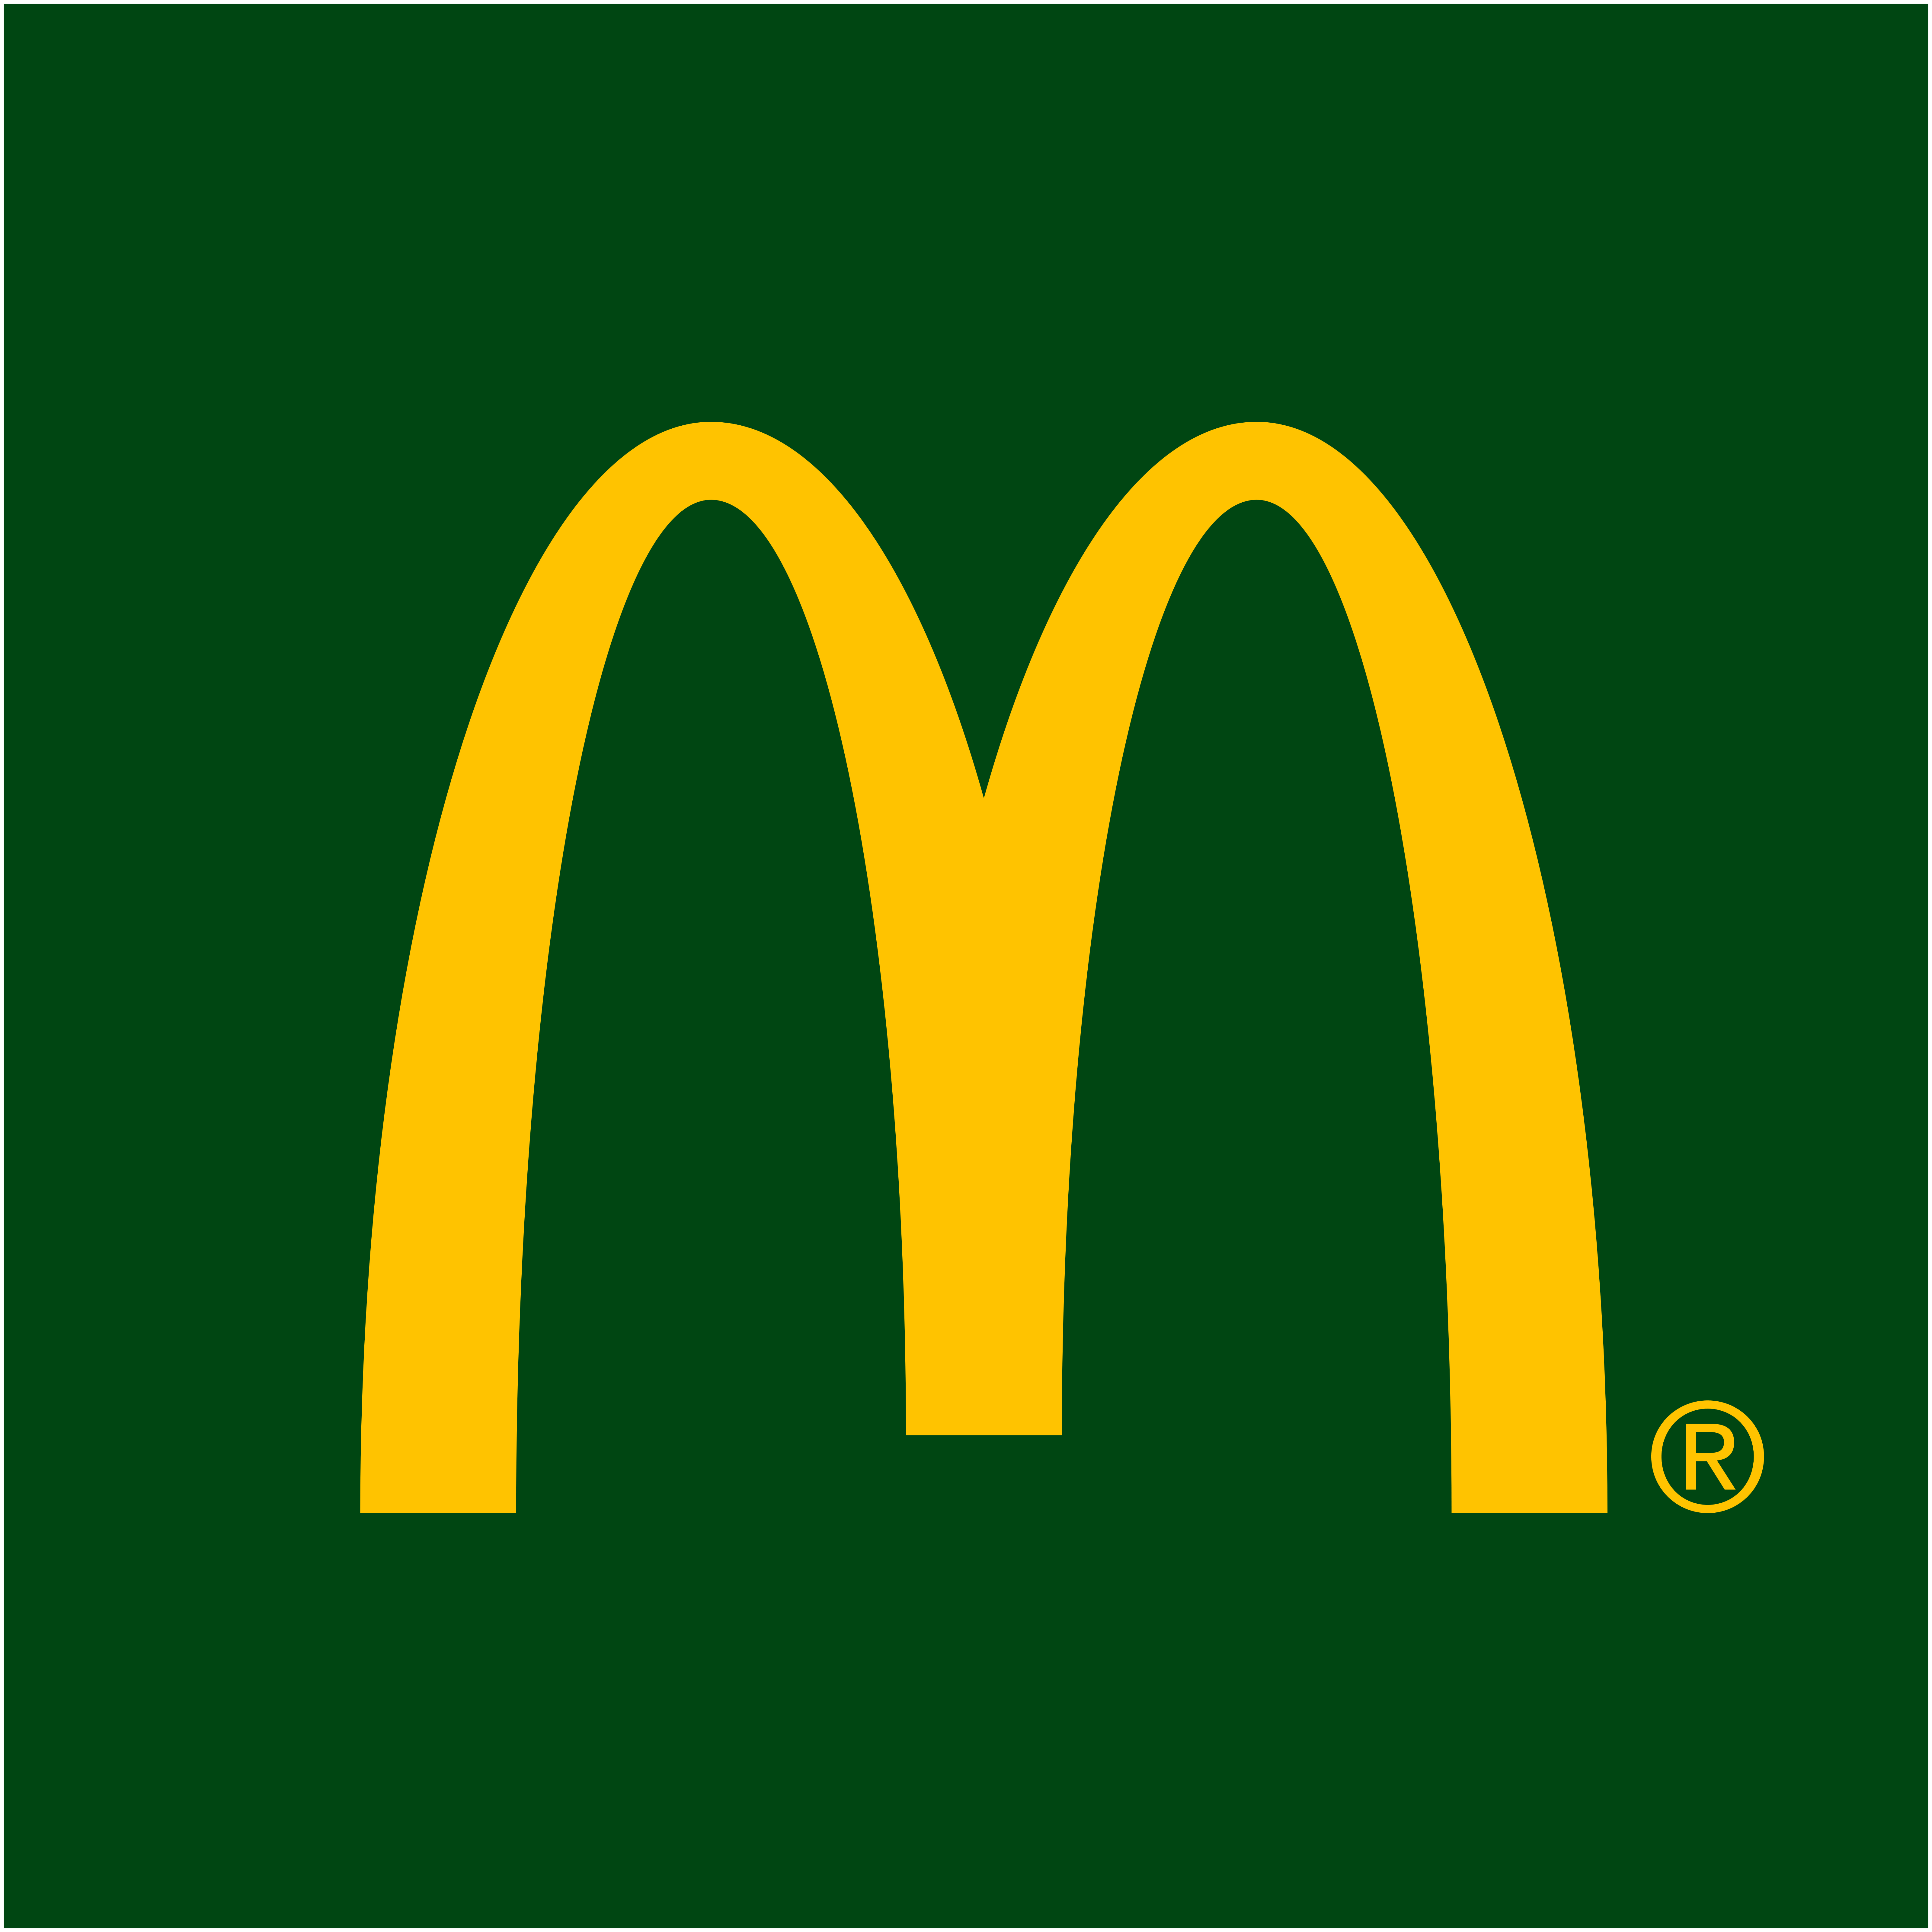 mc donalds operation management Mcdonald's food chain - operations case studies - icmr, mcdonald's is a fast food chain with restaurants all over the world it serves burgers and other fast food.